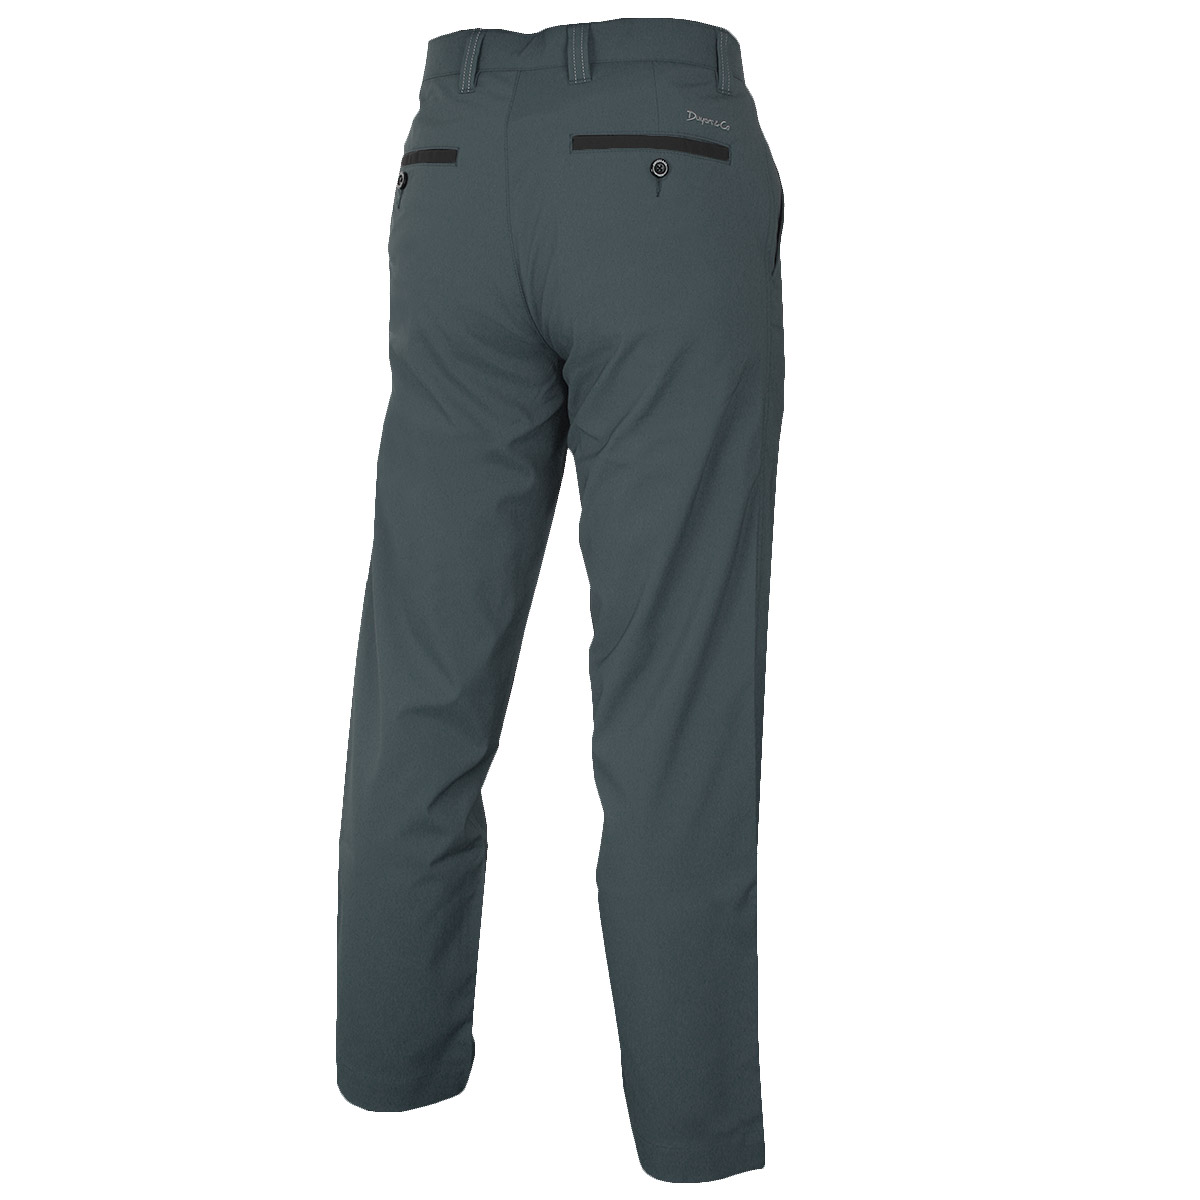 Dwyers-amp-Co-Mens-Matchplay-Stretch-Lightweight-Golf-Trousers-38-OFF-RRP thumbnail 19